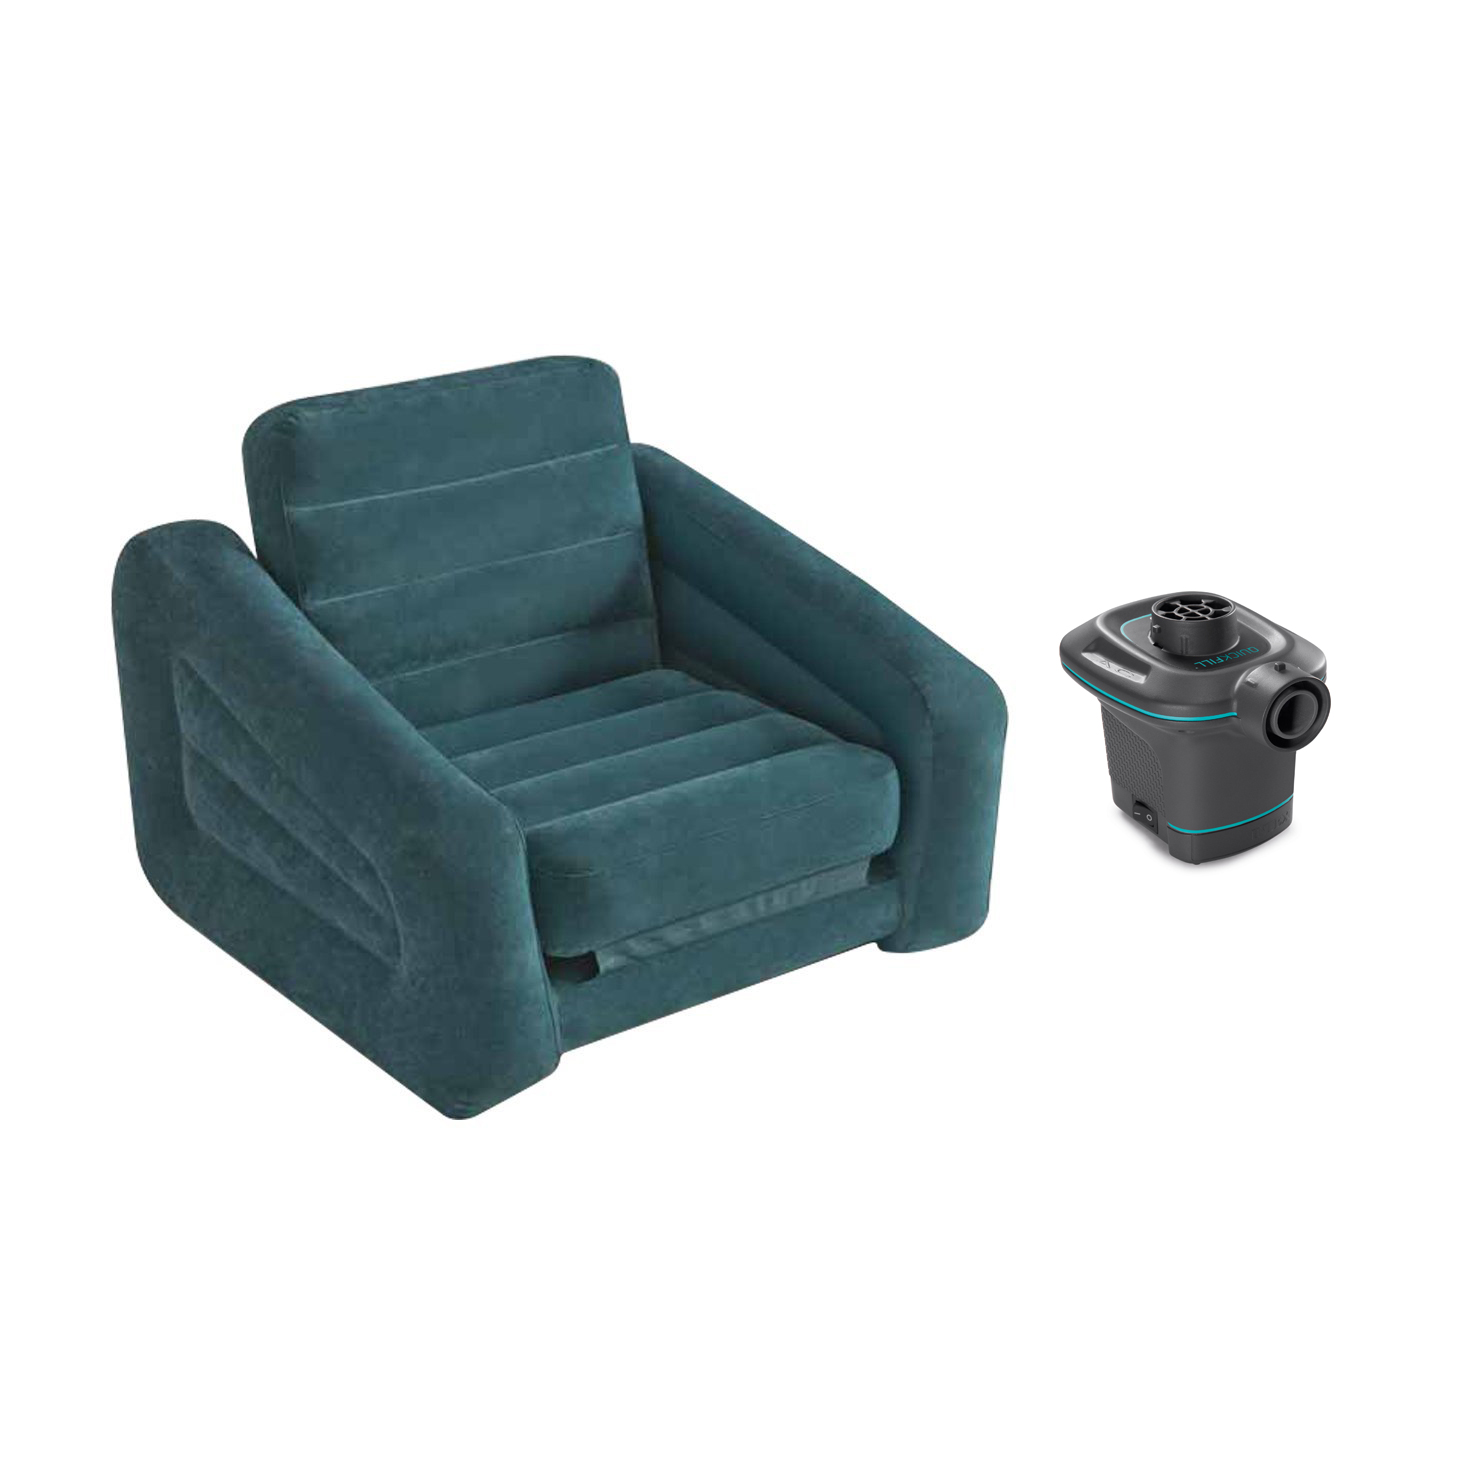 twin bed pull out chair swivel glider outdoor chairs intex ac electric air pump inflatable and mattress walmart com